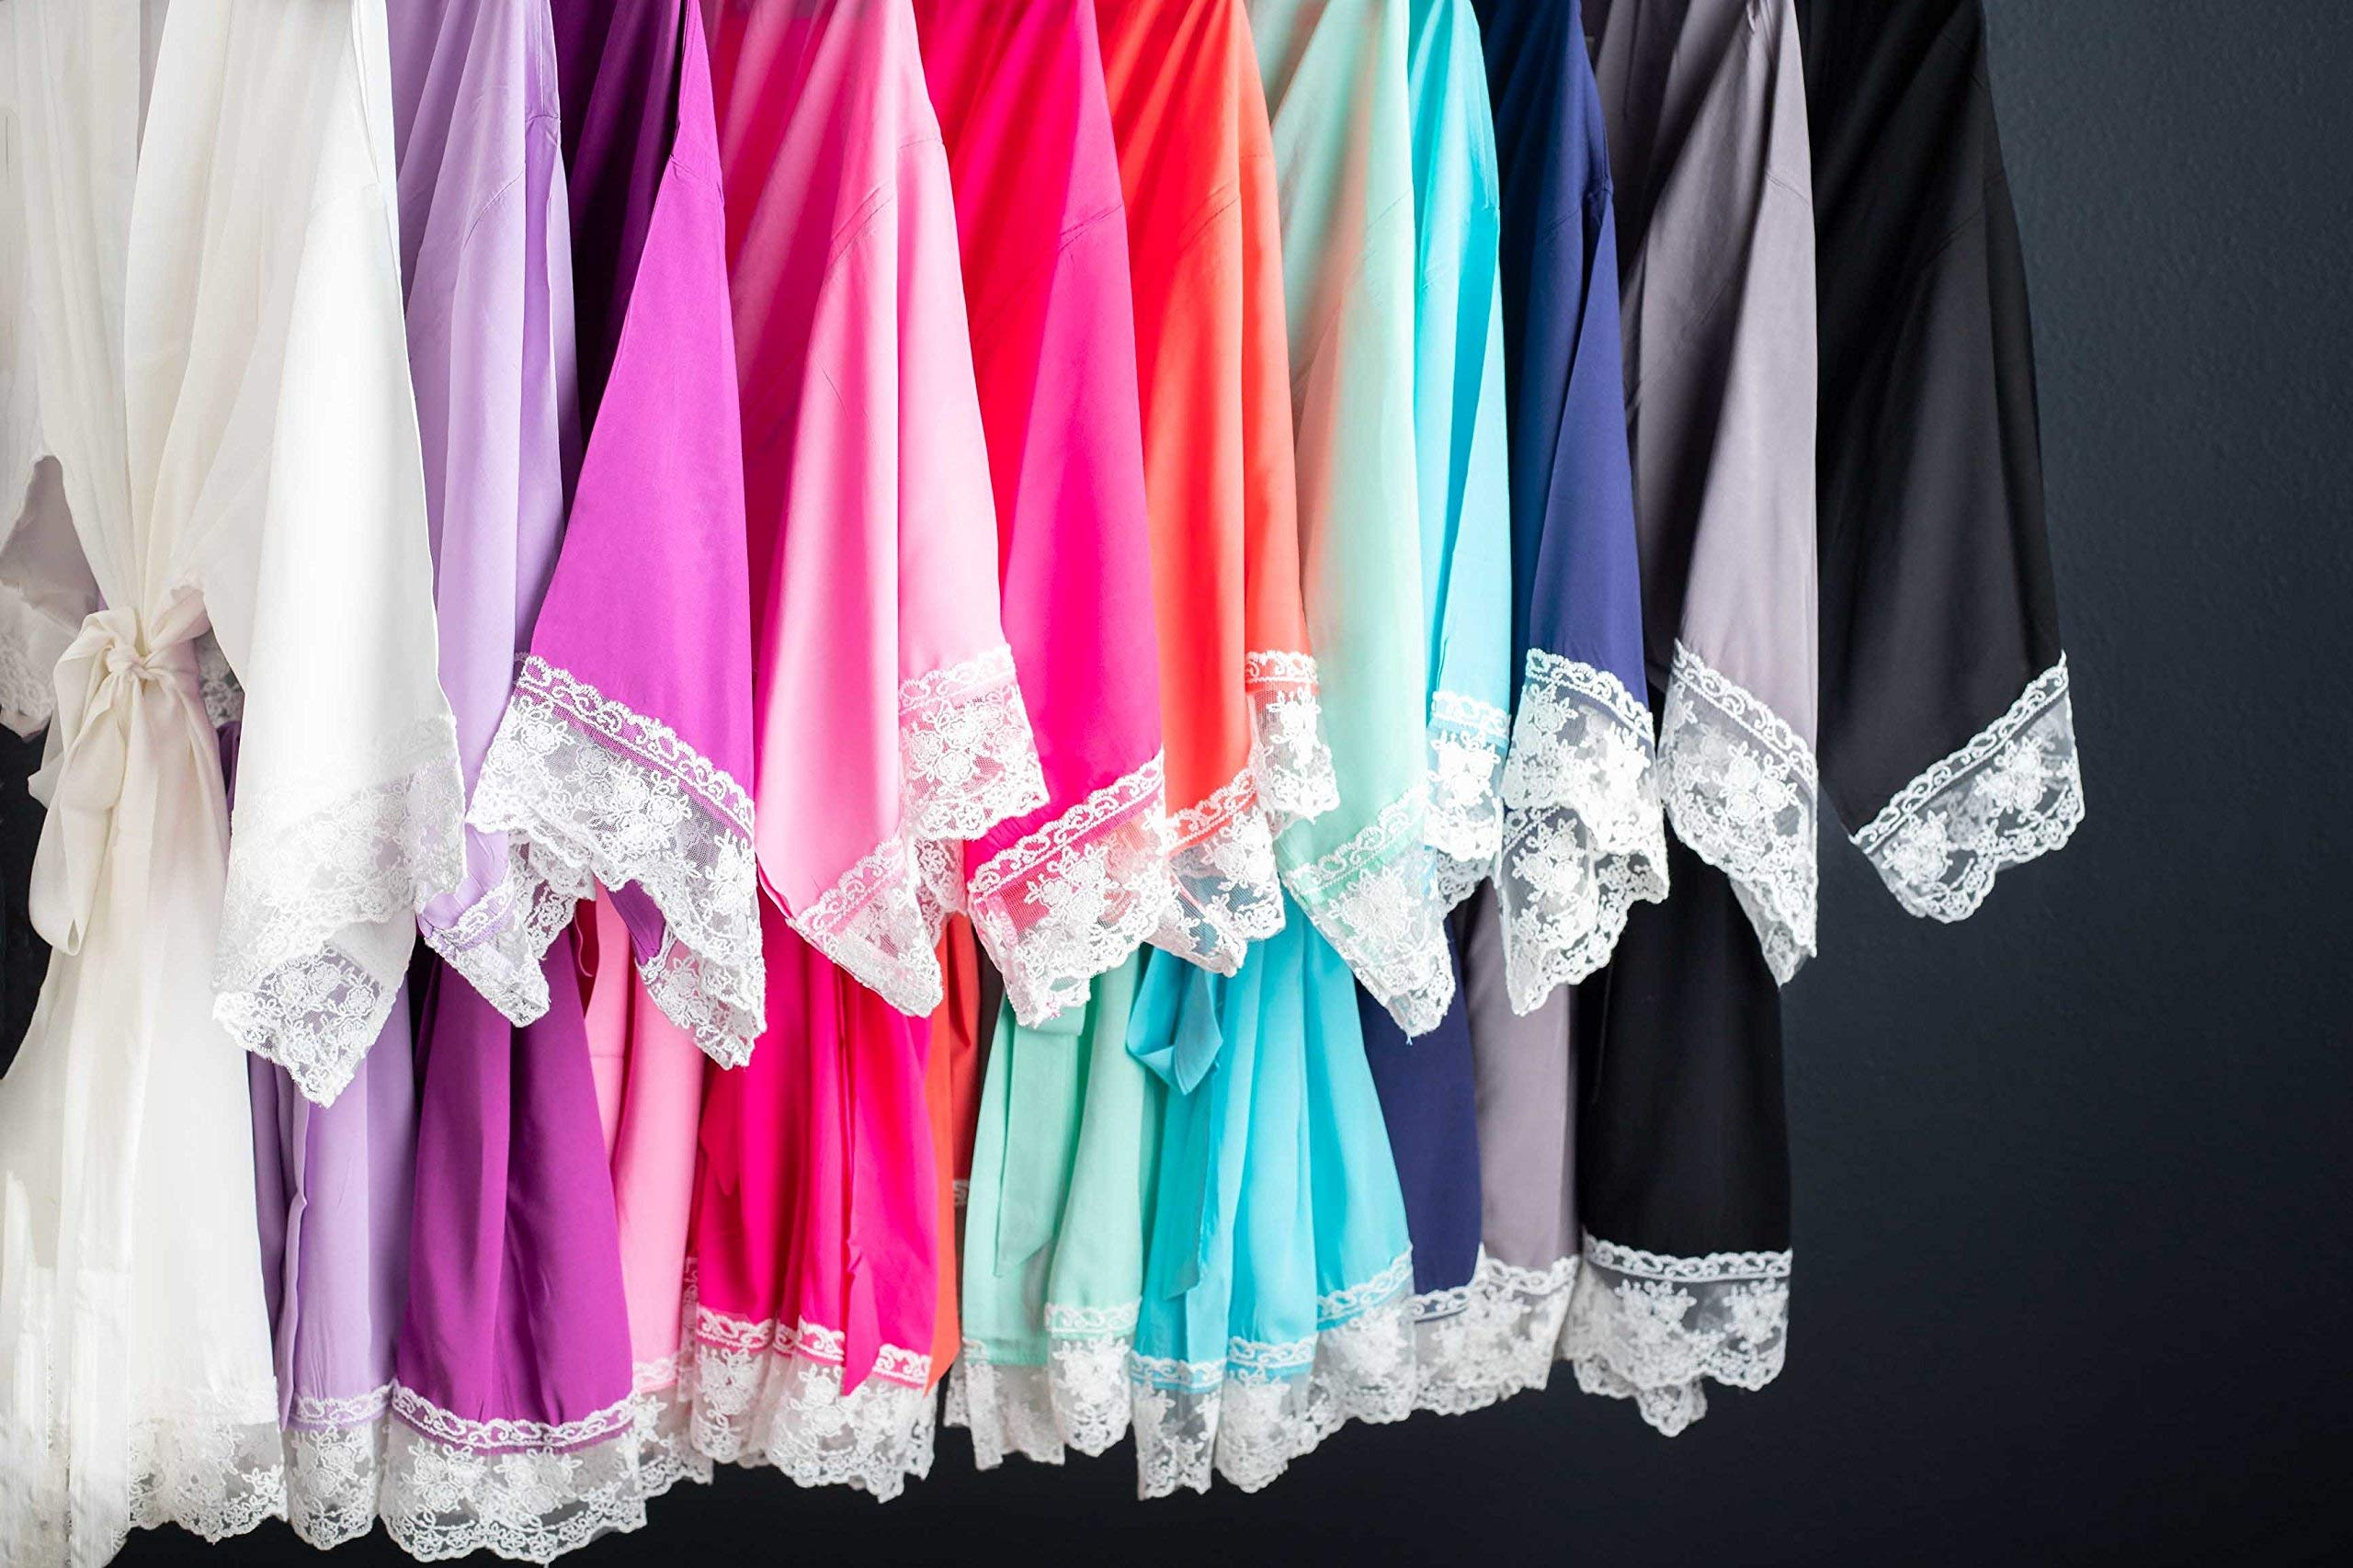 Solid Cotton Robes With White Lace Trim Available in 11 Colors